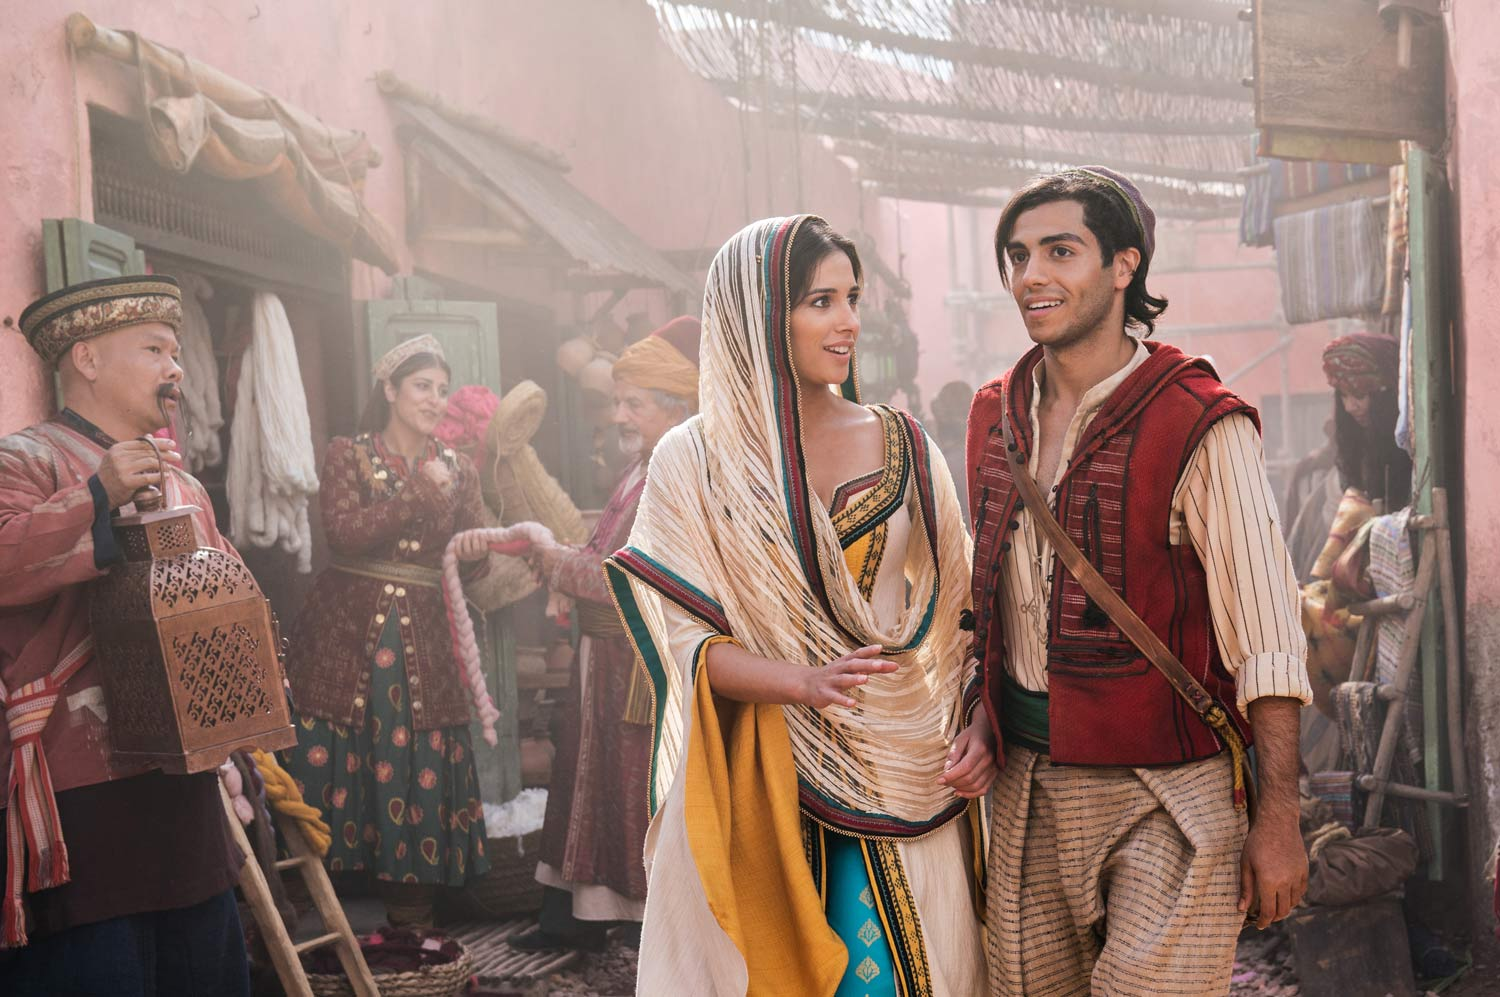 ALADDÍN - Disney - Mena Massoud y Naomi Scott